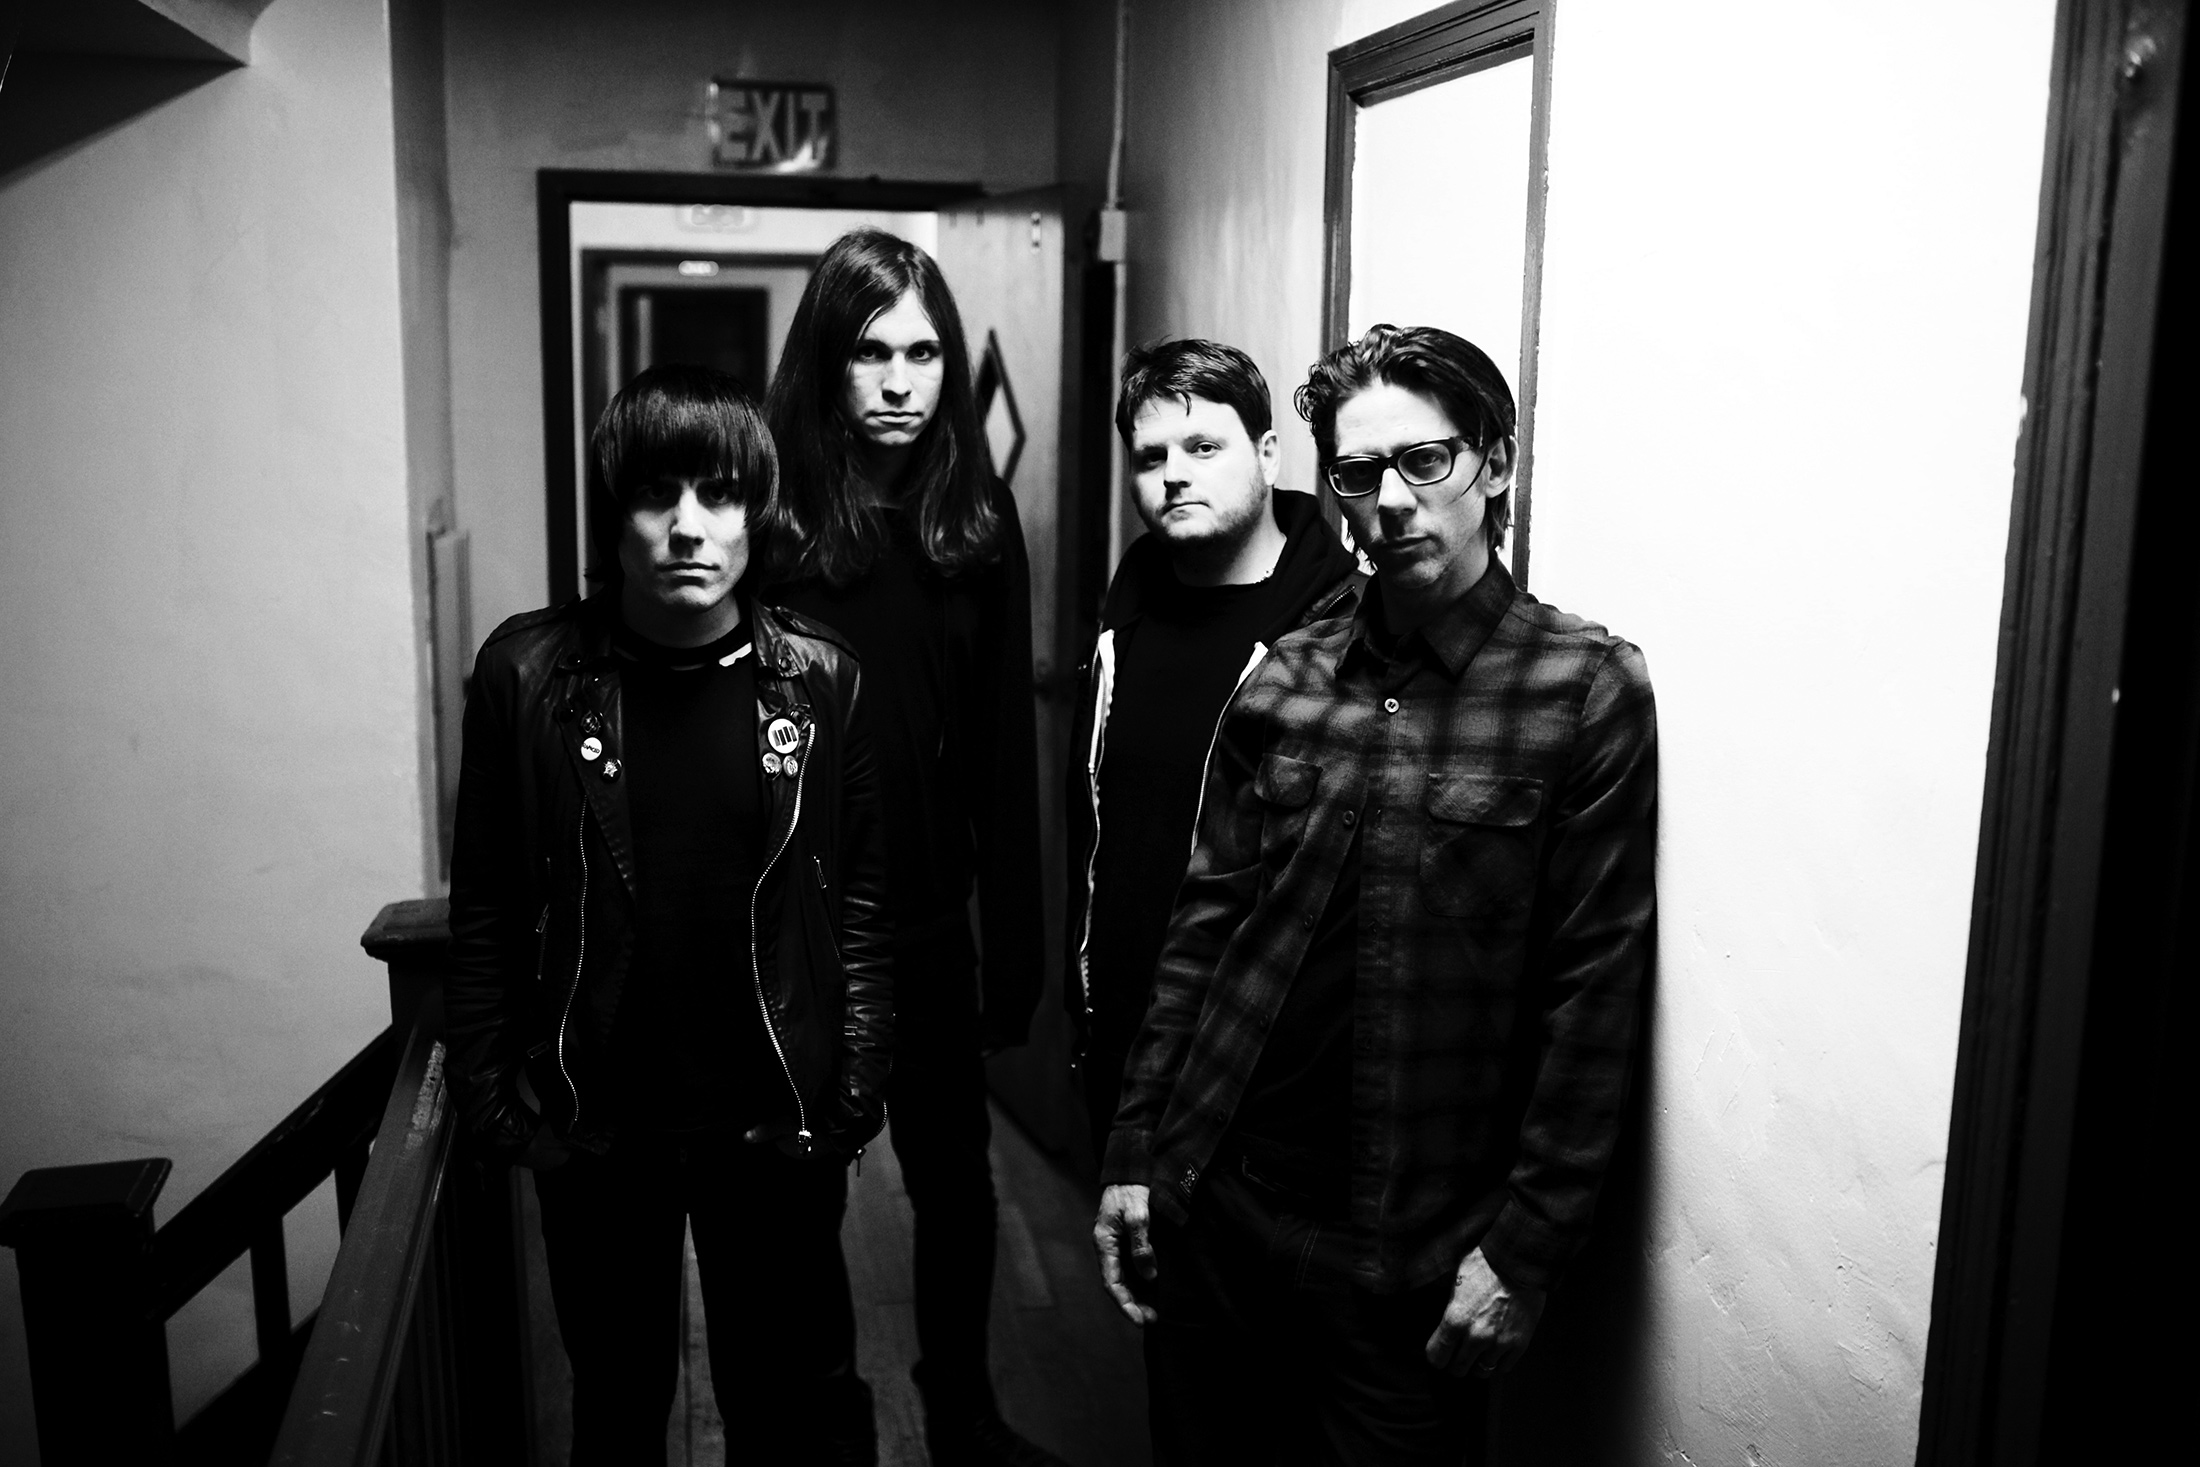 AgainstMe (press photo by Ryan Russel)